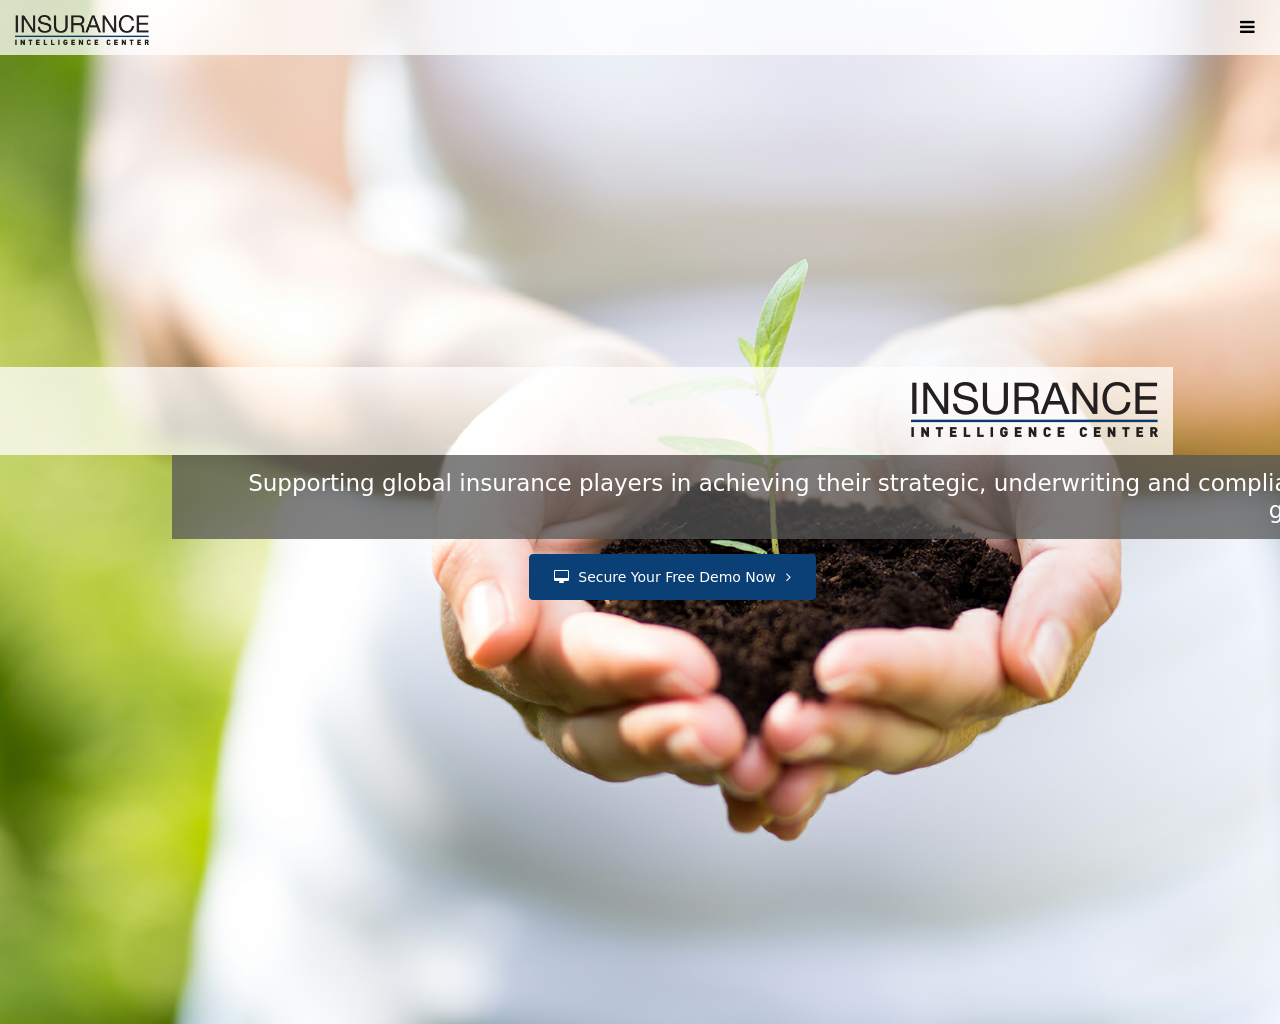 World-Insurance-Network-Advertising-Reviews-Pricing